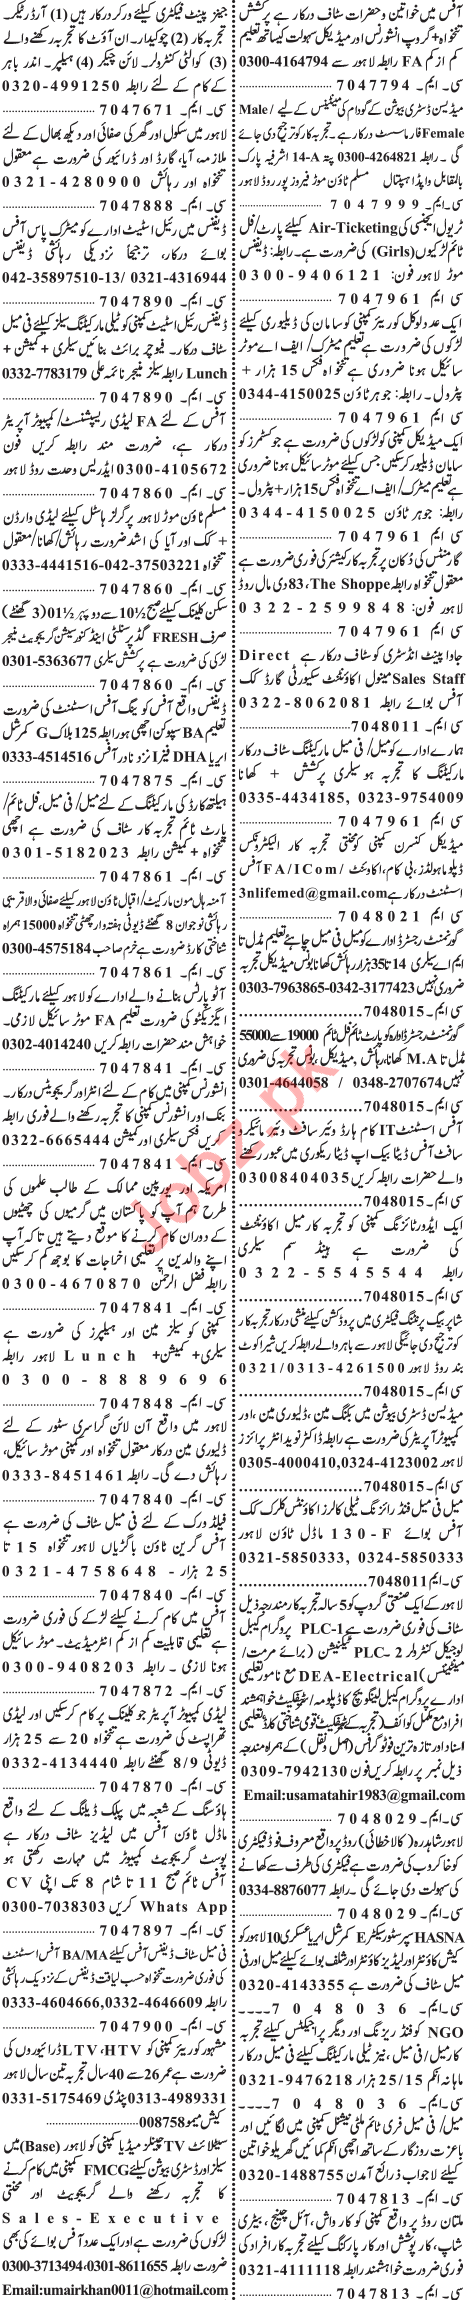 Daily Jang Newspaper Classified Ads 2018